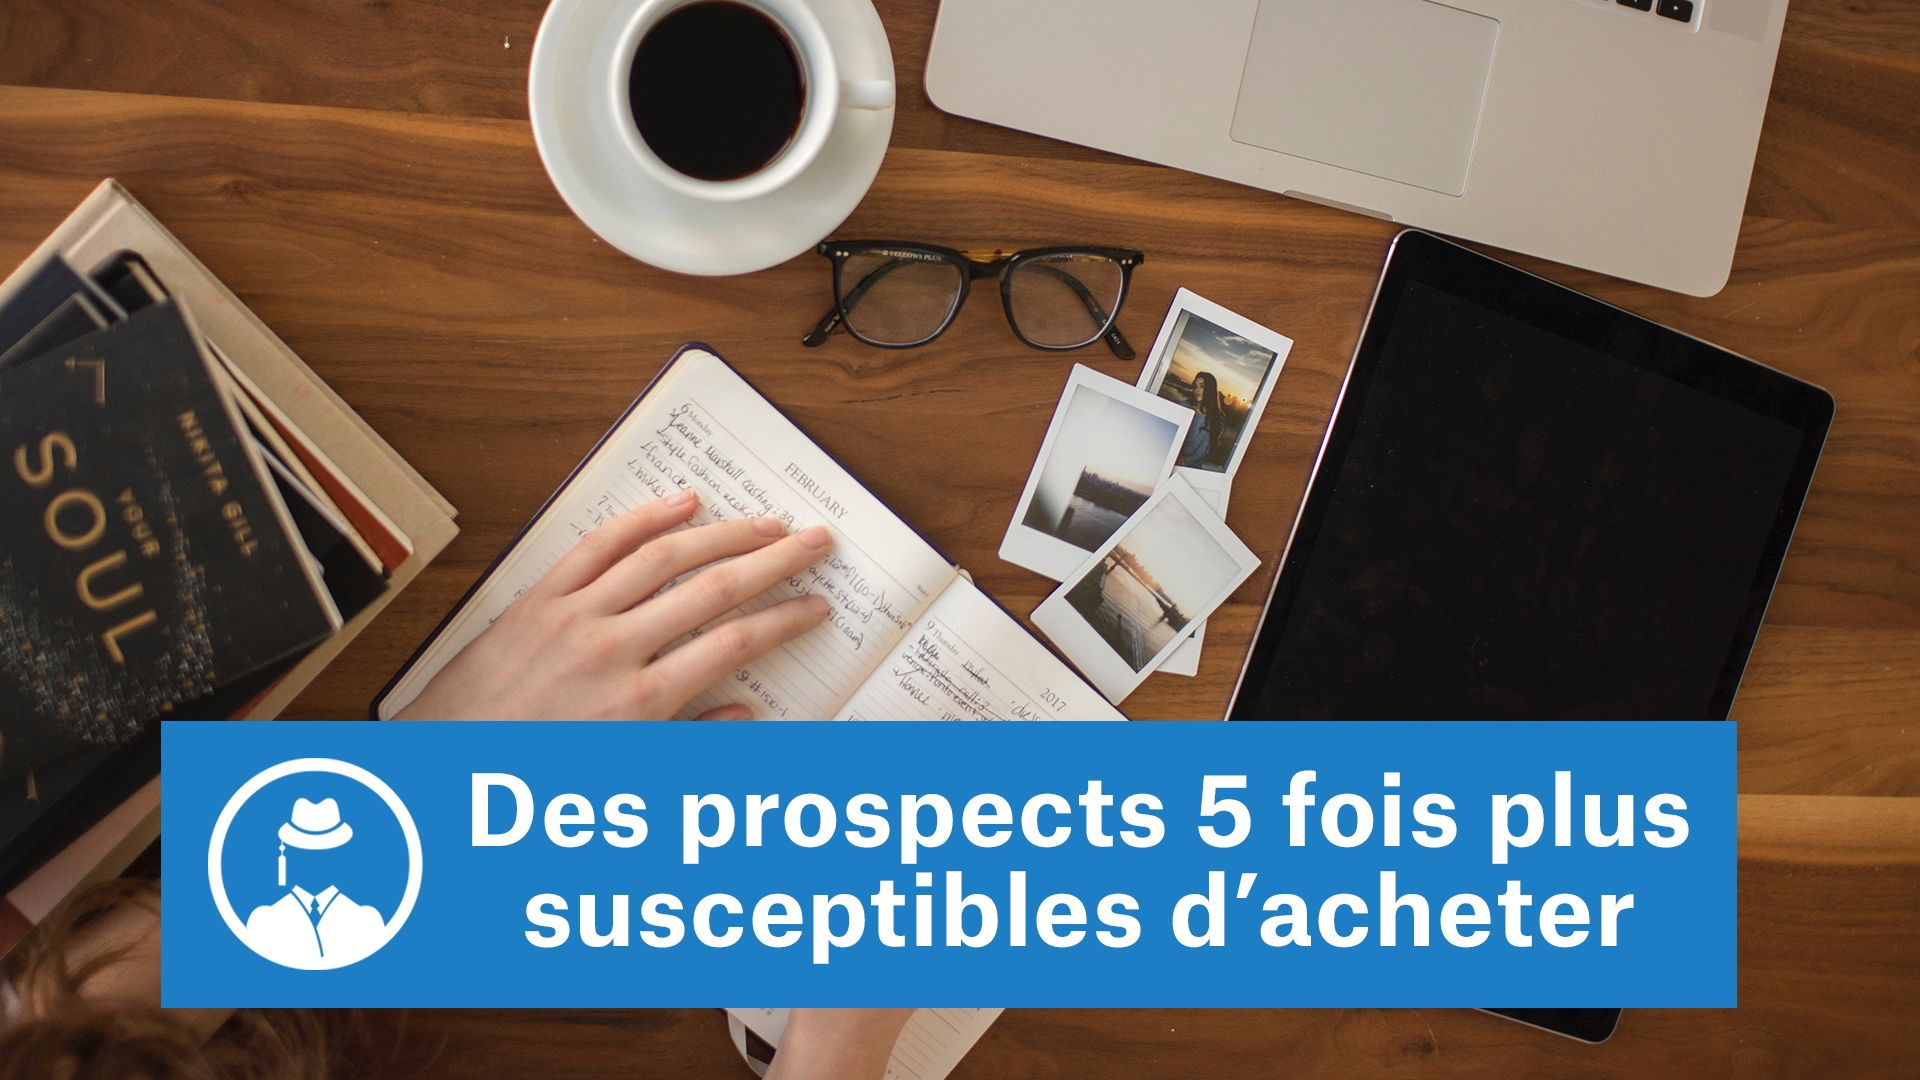 Des prospects 5 fois plus susceptibles d'acheter #GrowthHacking #WebMarketing #FormationGrowthHacking #CentreDeFormationFrance #TunnelAARRR #AARRR #SocialMedia #CommunityManagement #SEO #blog #blogging #SiteWeb